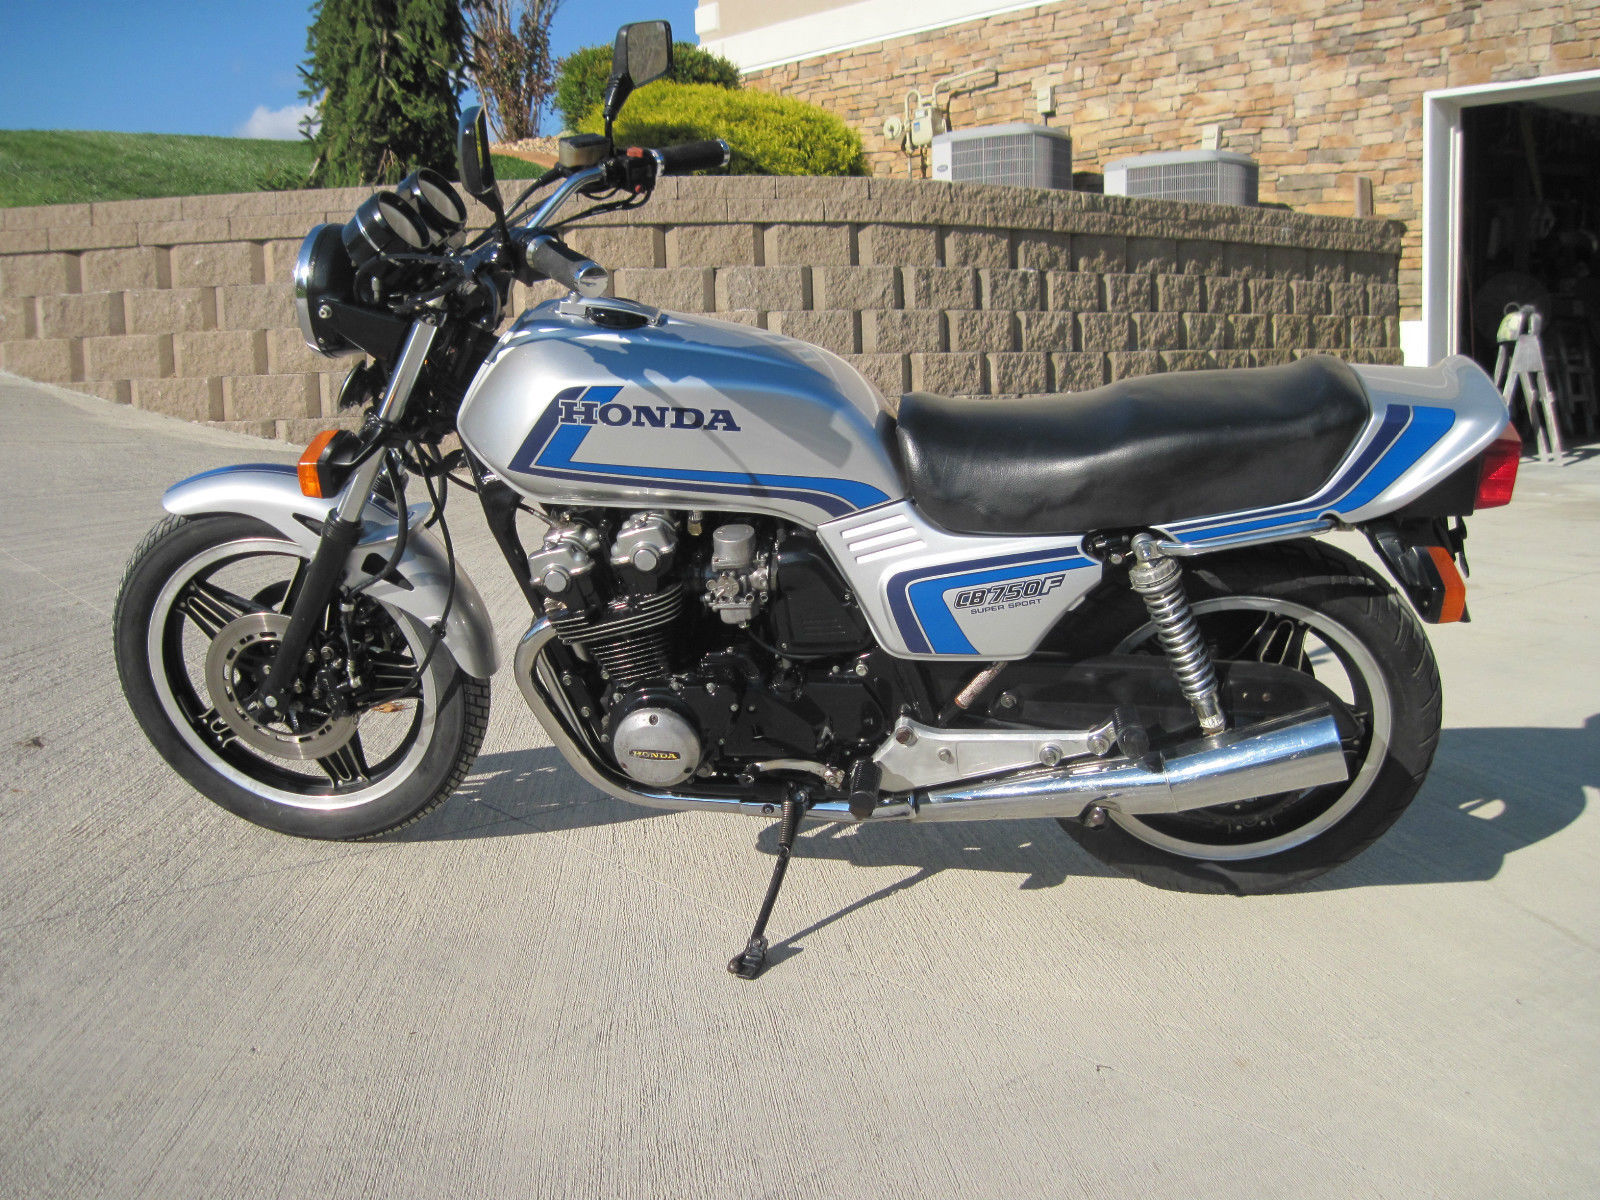 1982 Honda CB750F + Freddie Spencer Helmet | Bike-urious